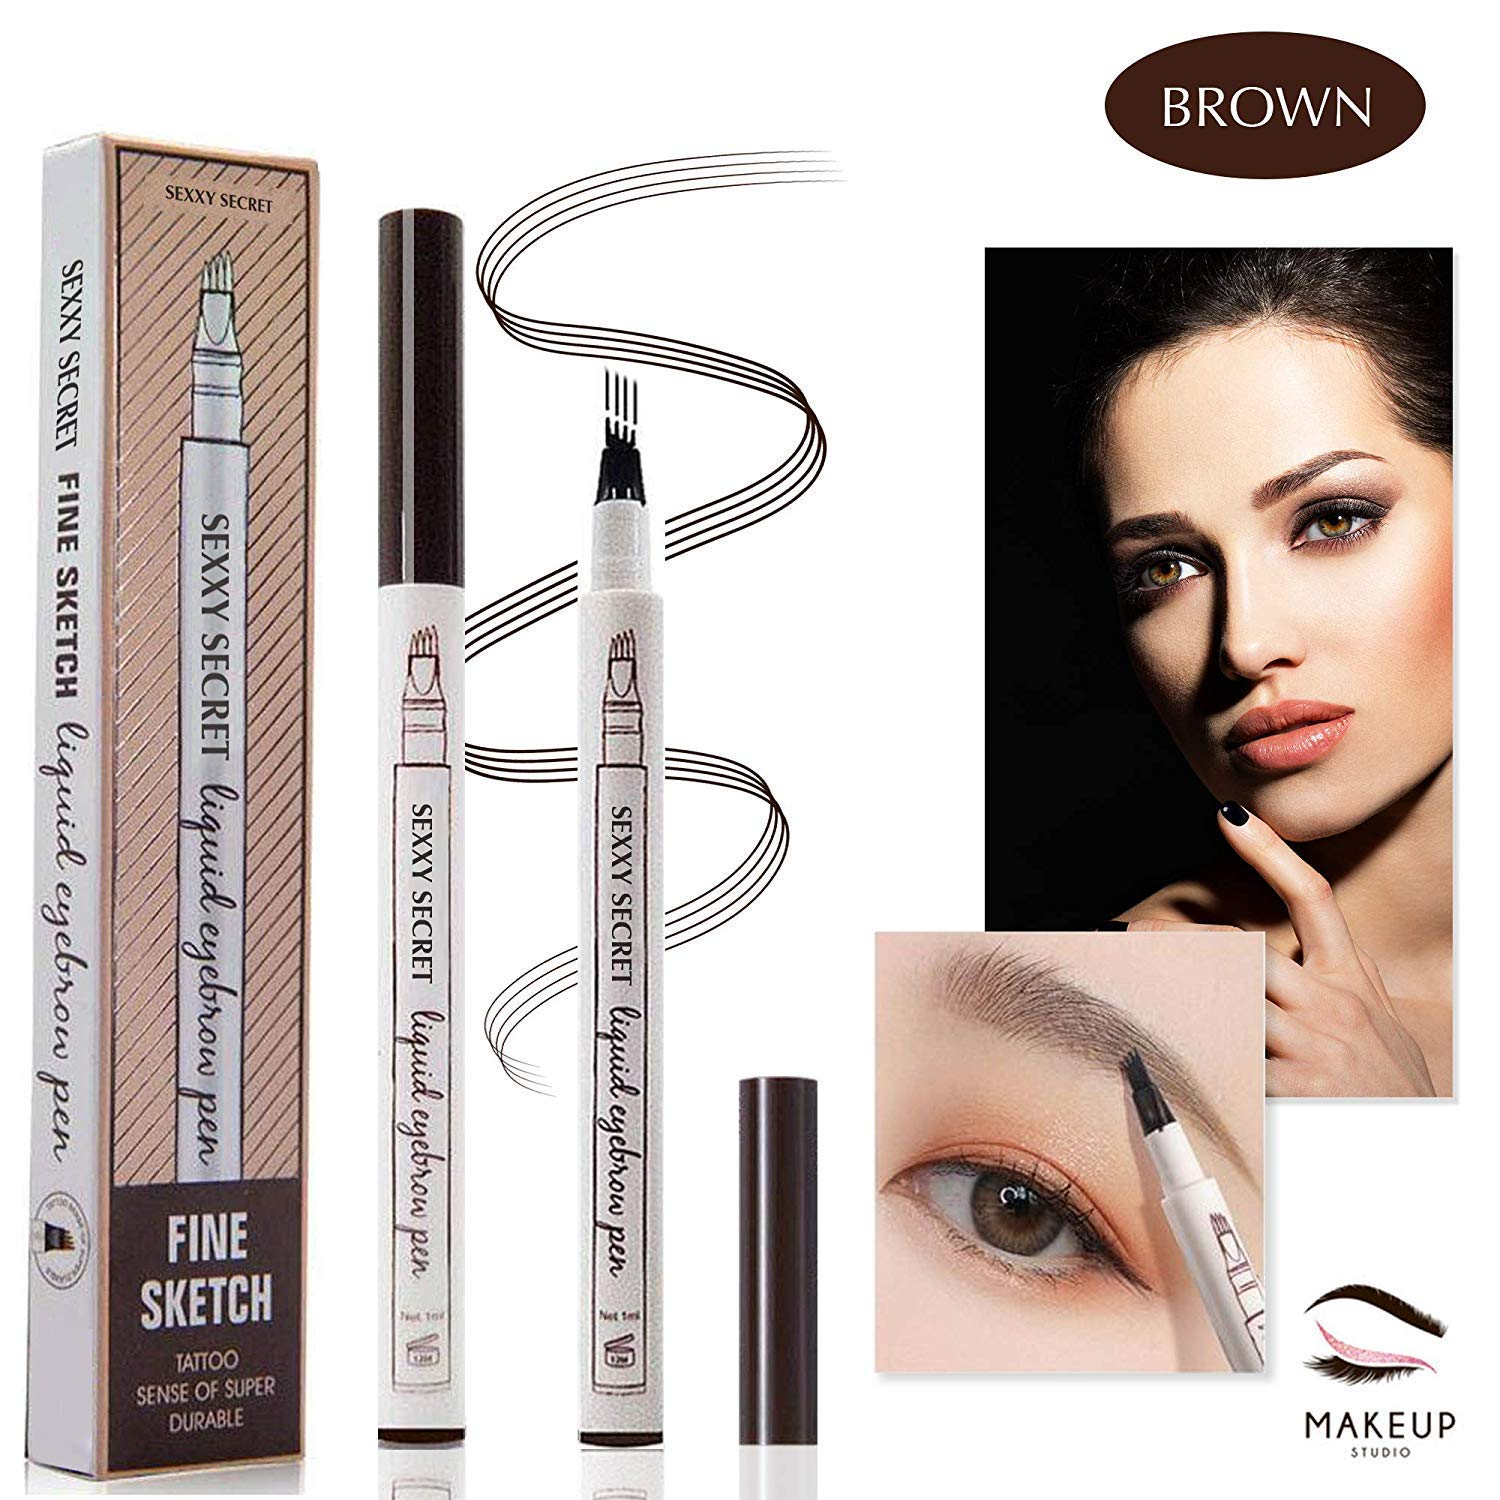 Eyebrow Tattoo Pen Microblading Eyebrow Pencil Tattoo Brow Ink Pen with a Micro-Fork Tip Applicator Creates Natural Looking Brows Effortlessly and Stays on All Day Brown